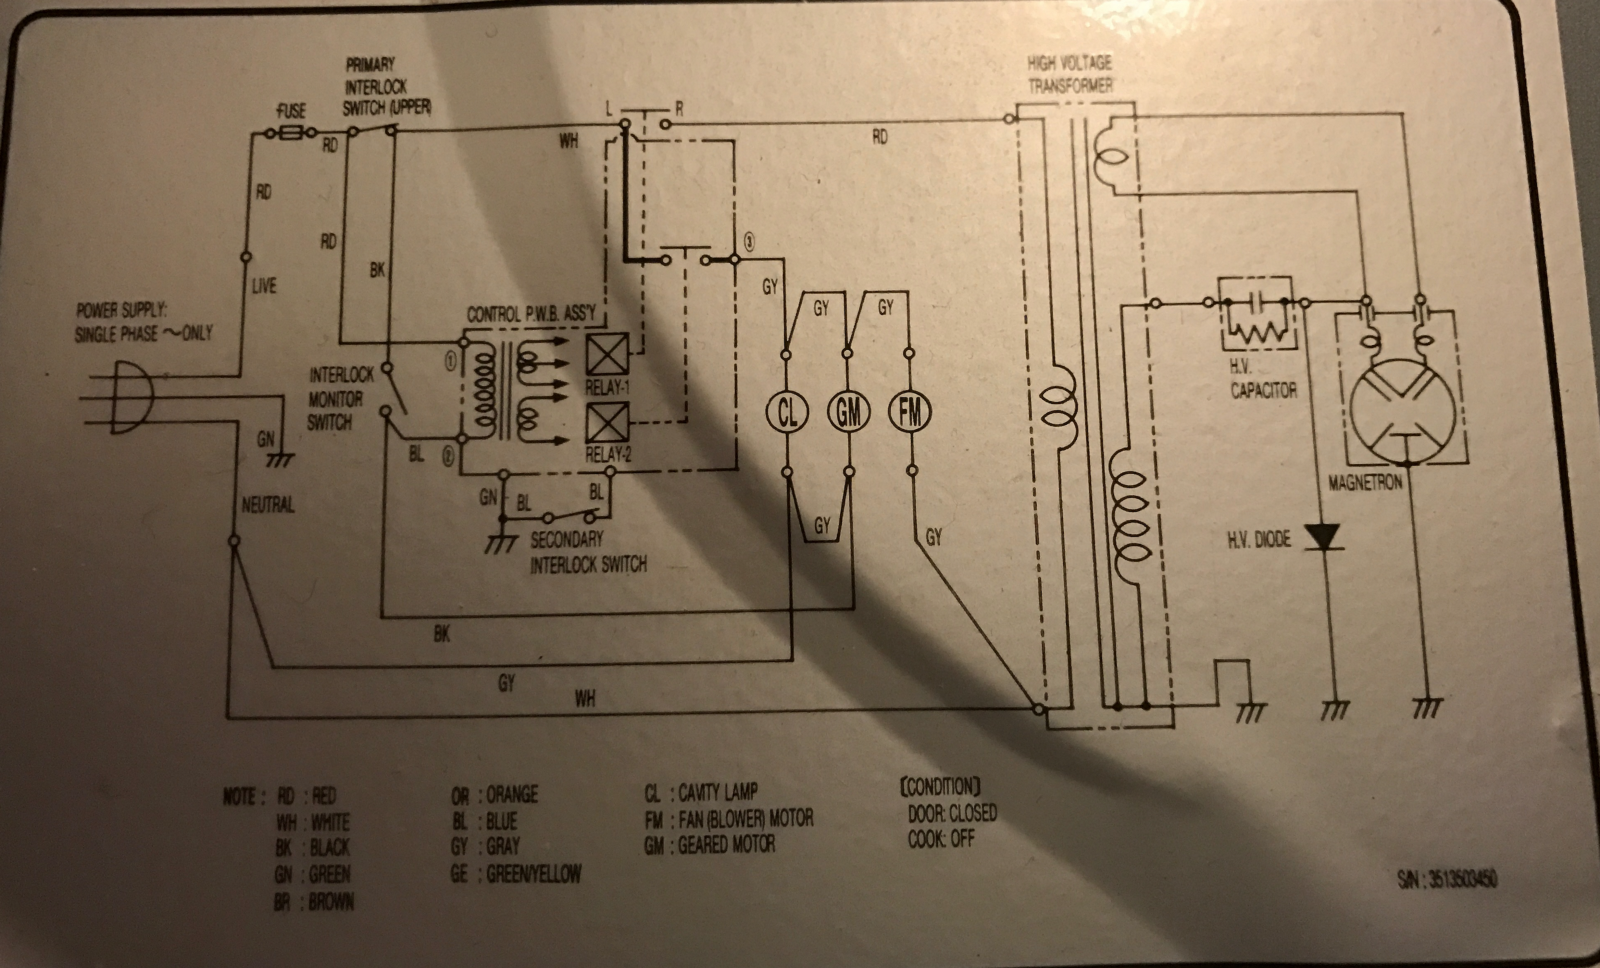 Emerson Mw8675w Microwave Oven Teardown Salvaging The Led Display Circuit Diagram A Pleasant Surprise Is Label On Top Containing Schematic